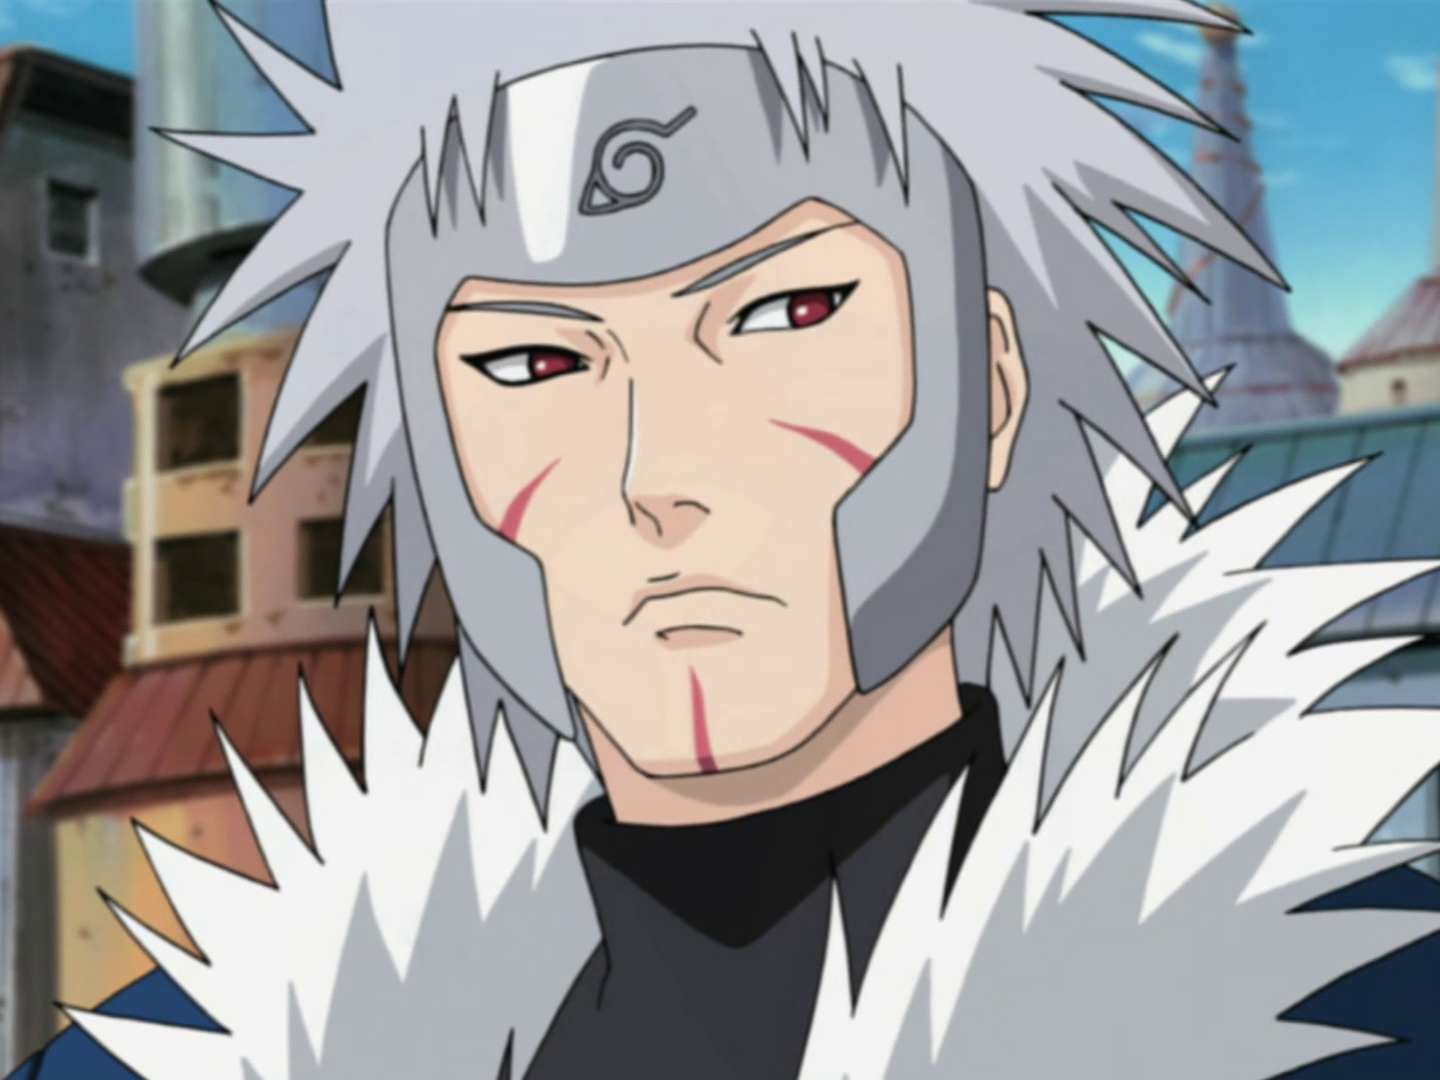 Tobirama Senju | Narutopedia | FANDOM powered by Wikia